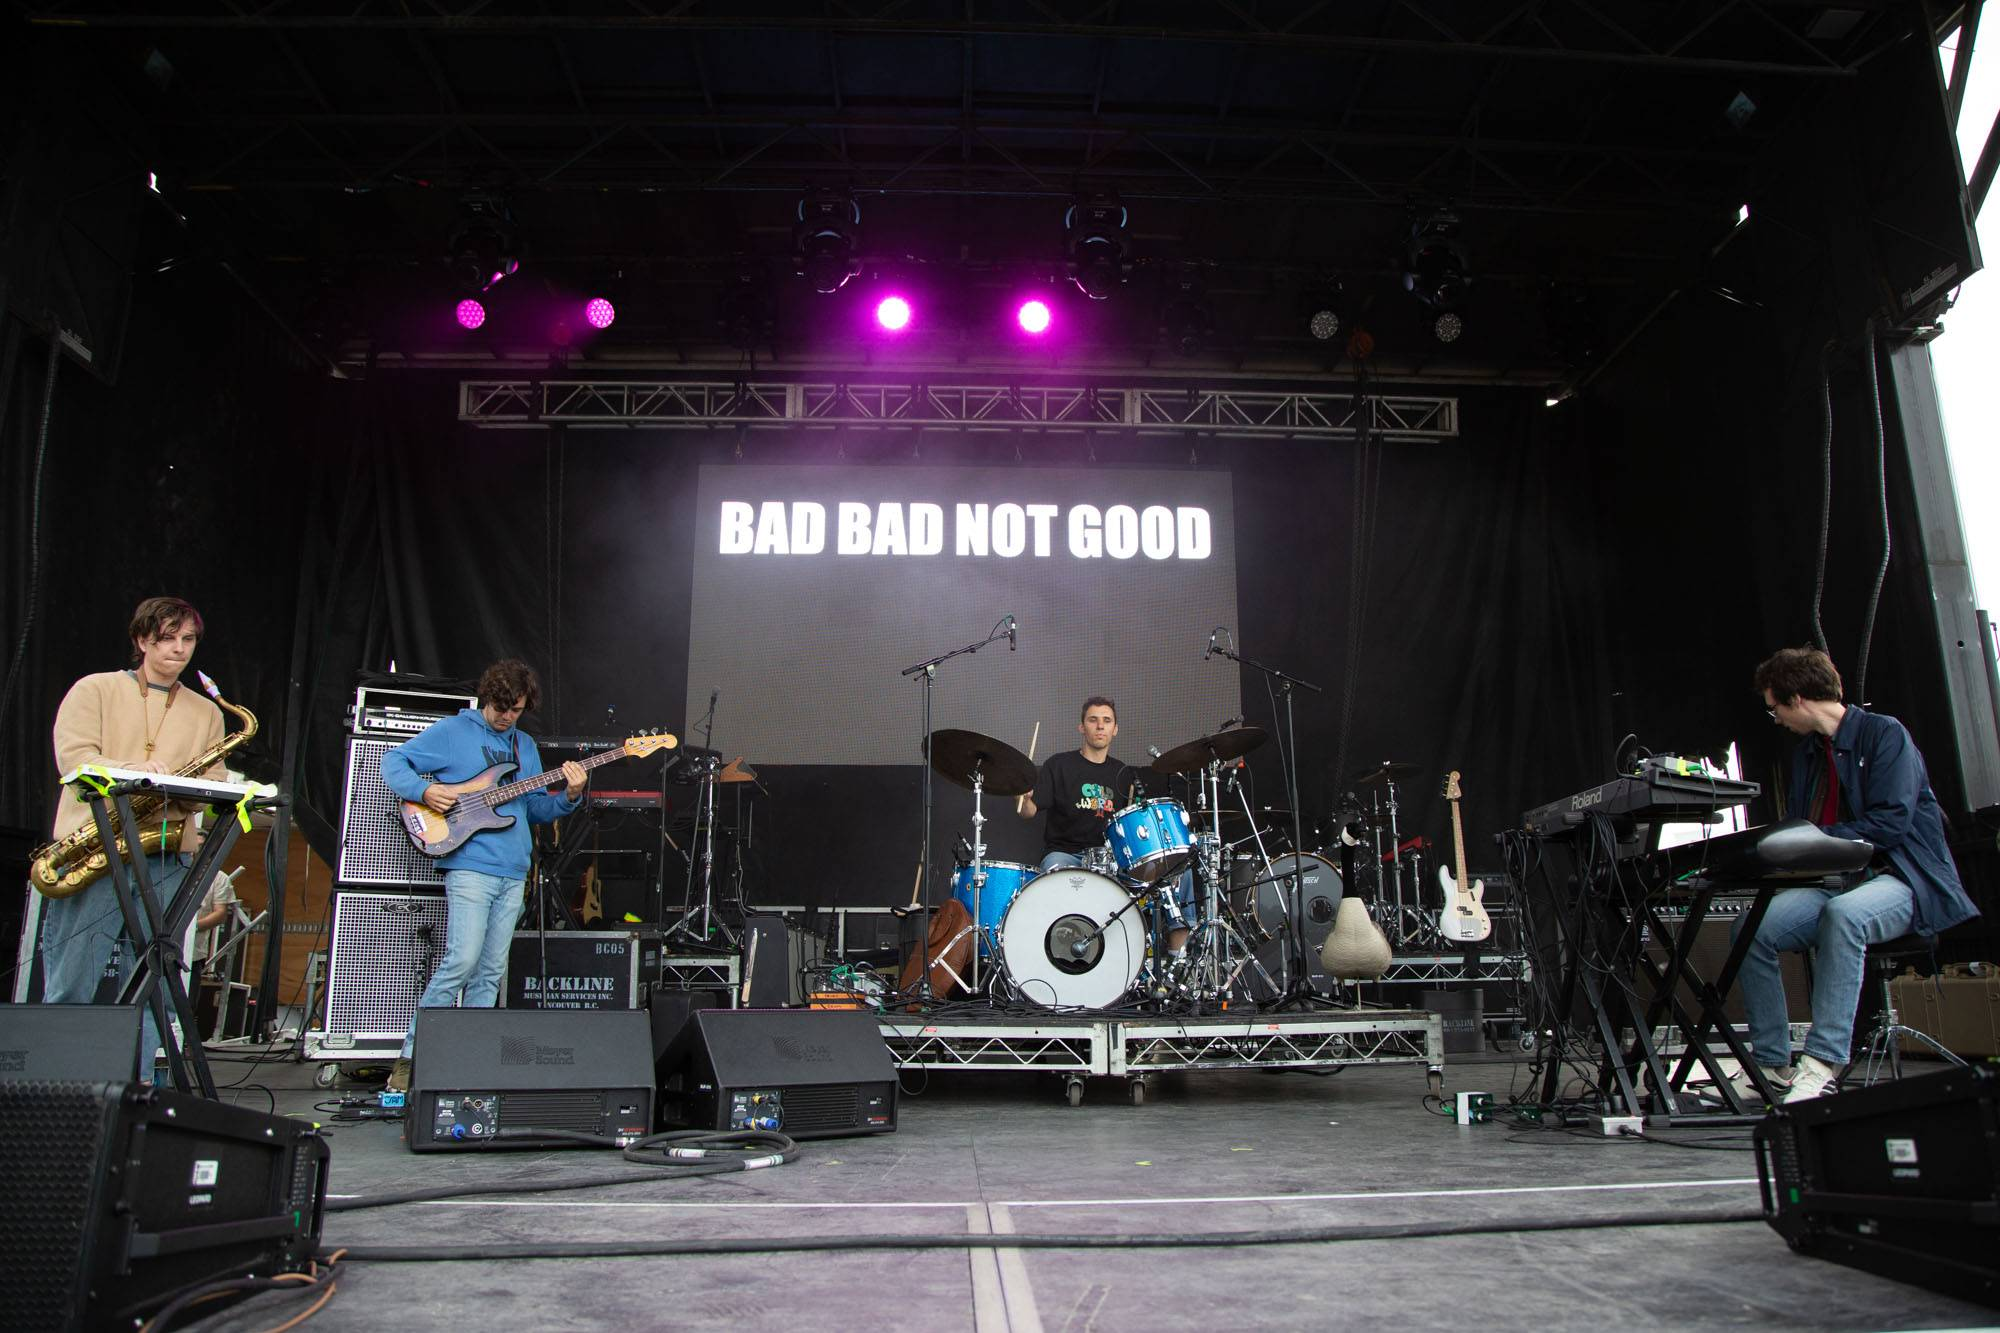 Badbadnotgood at The Park Show, Vancouver, Aug 10 2019. Kirk Chantraine photo.